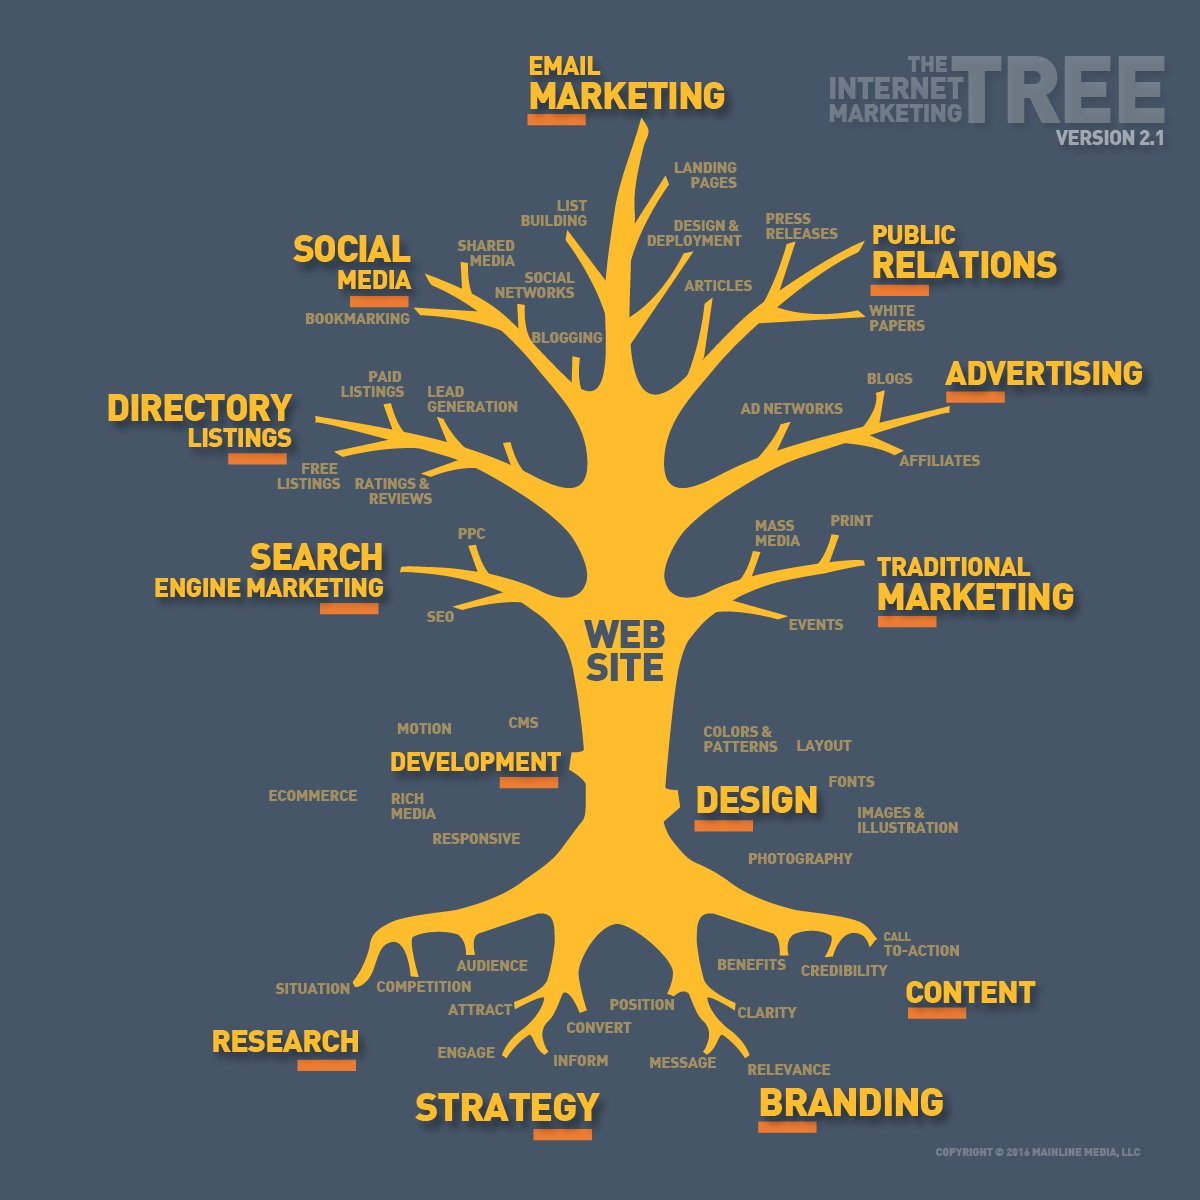 #InternetMarketing Tree #Contentmarketing #Branding #Brand #SEO #Startup #Leadgeneration #Success #SMM #SEOtips #GrowthHacking #Content #Marketing #DigitalMarketing #SocialMedia #Makeyourownlane #Defstar5 #Mpgvip #OnlineMarketing #EmailMarketing #SocialMediaMarketing #AI #SPDC<br>http://pic.twitter.com/SblAzbFm9t